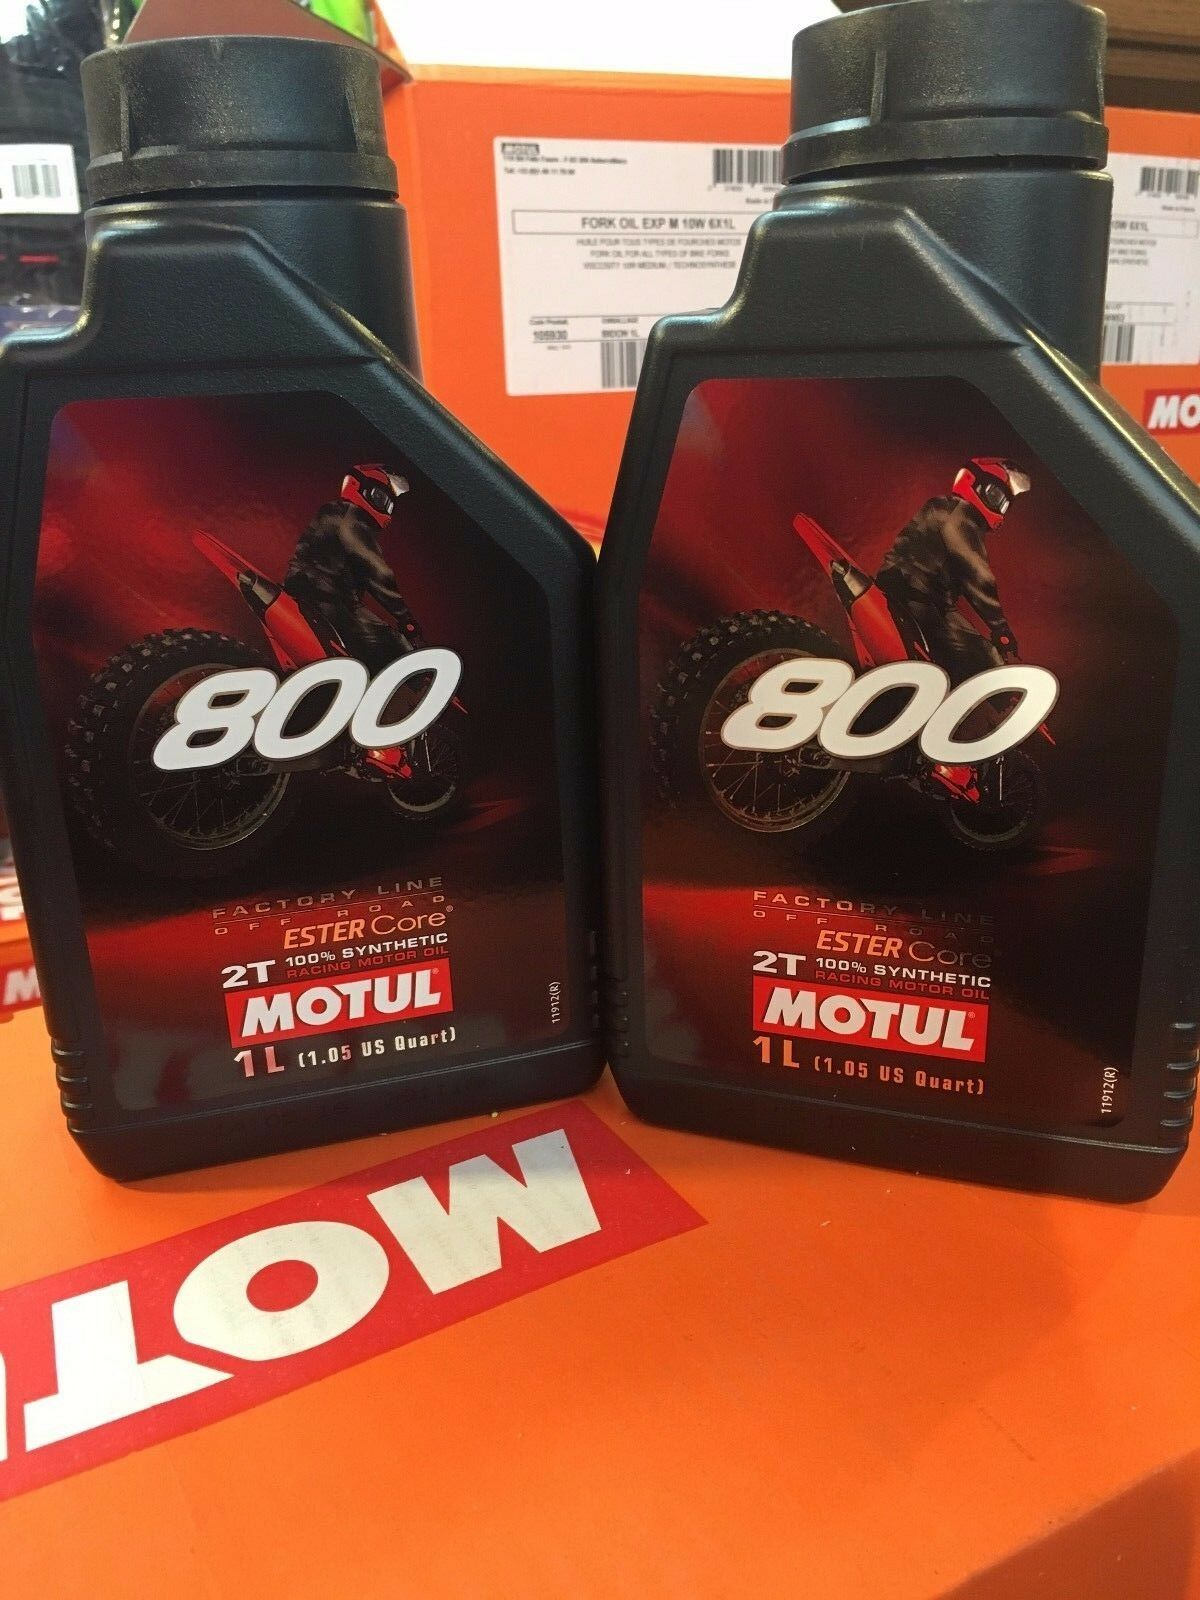 MOTUL 800 2T FACTORY LINE OFF ROAD 2 stroke  1 LITER 2PACK  FULL SYNTHETIC